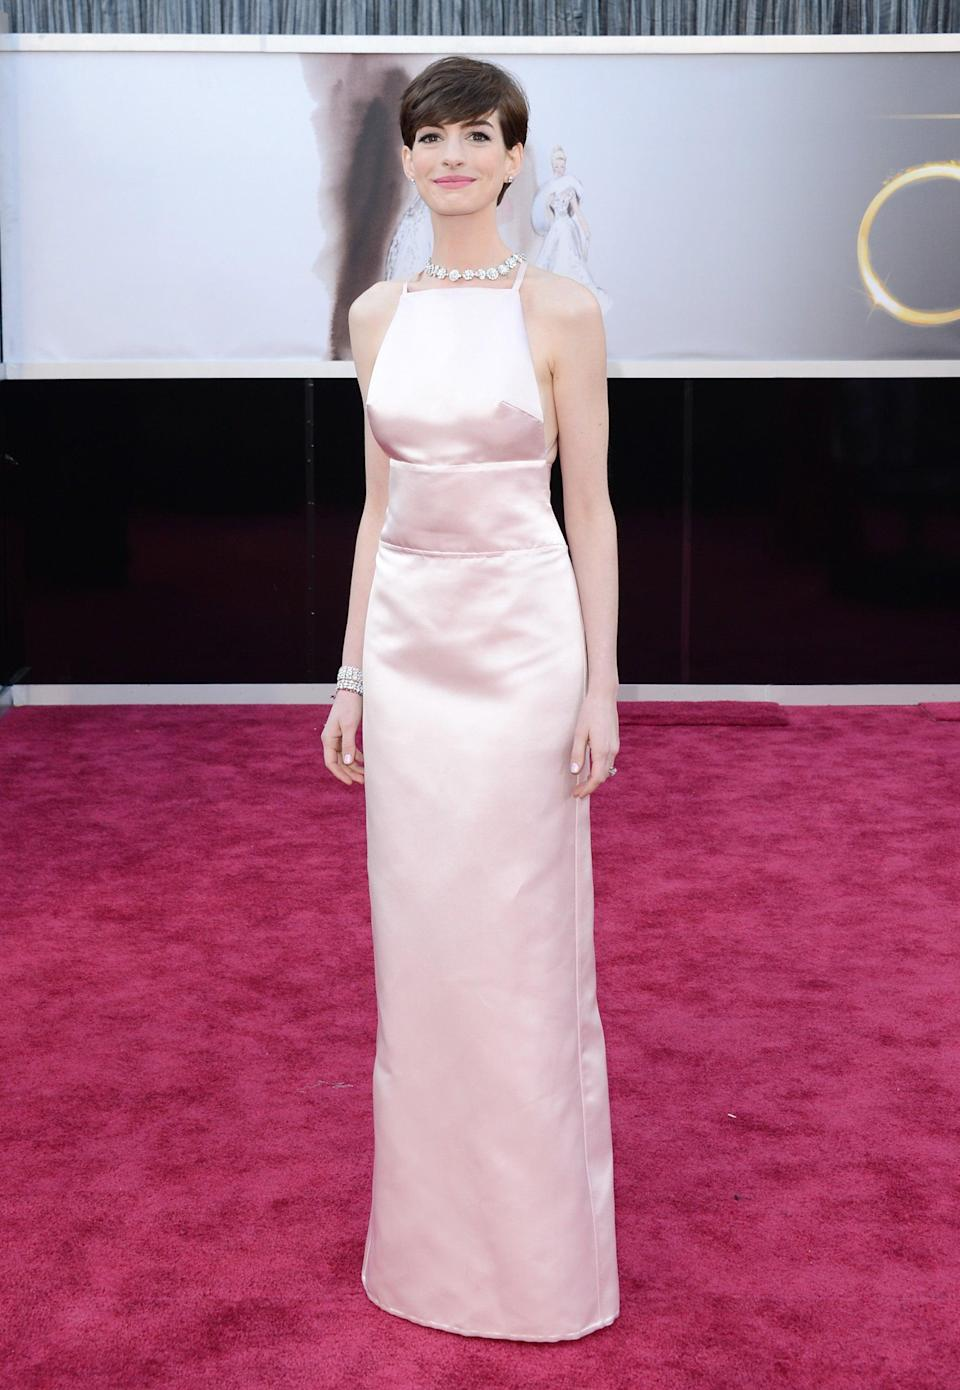 Anne Hathaway in her last-minute outfit in 2013Getty